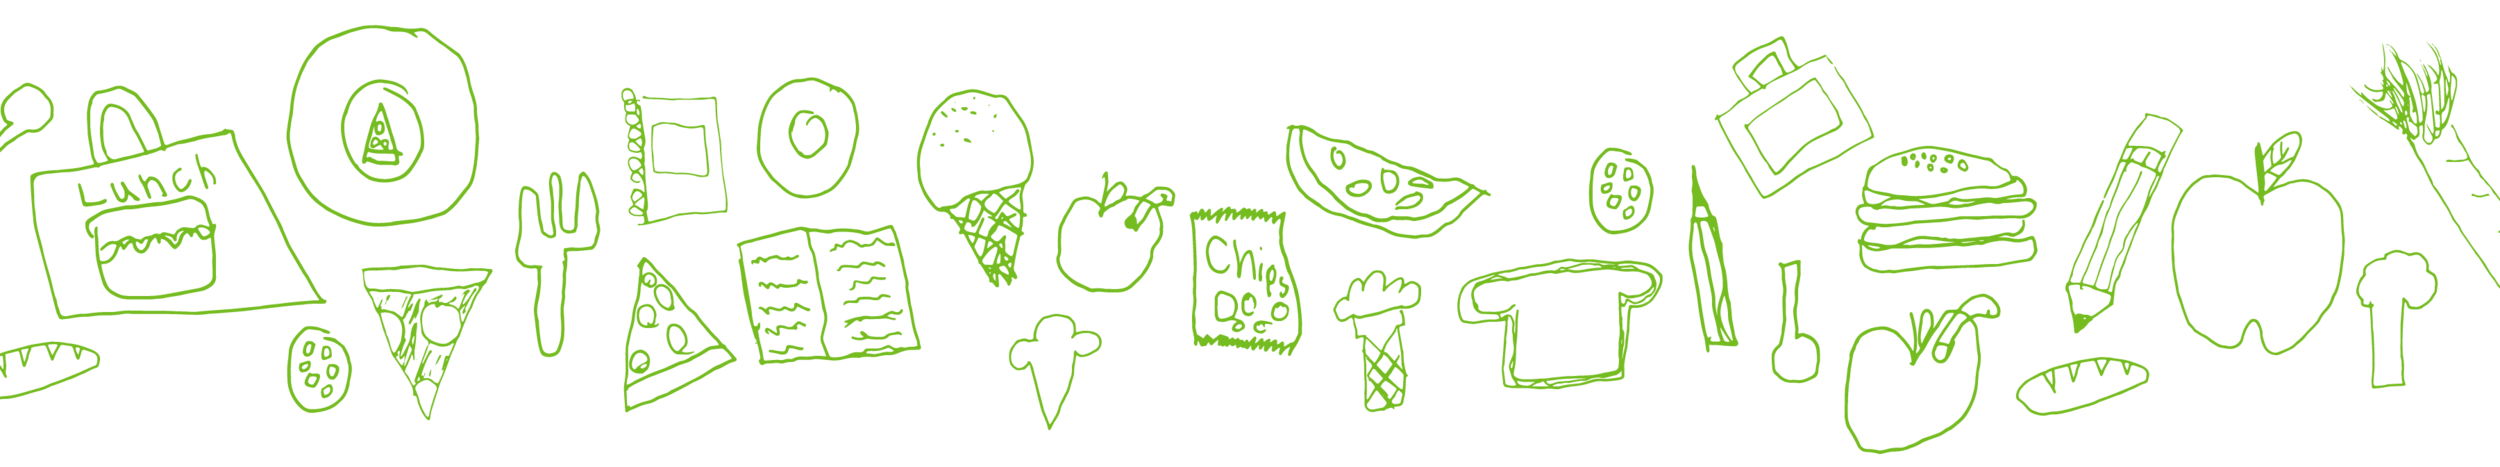 Togather_Web_Graphics_Lunch_Illustrations.png